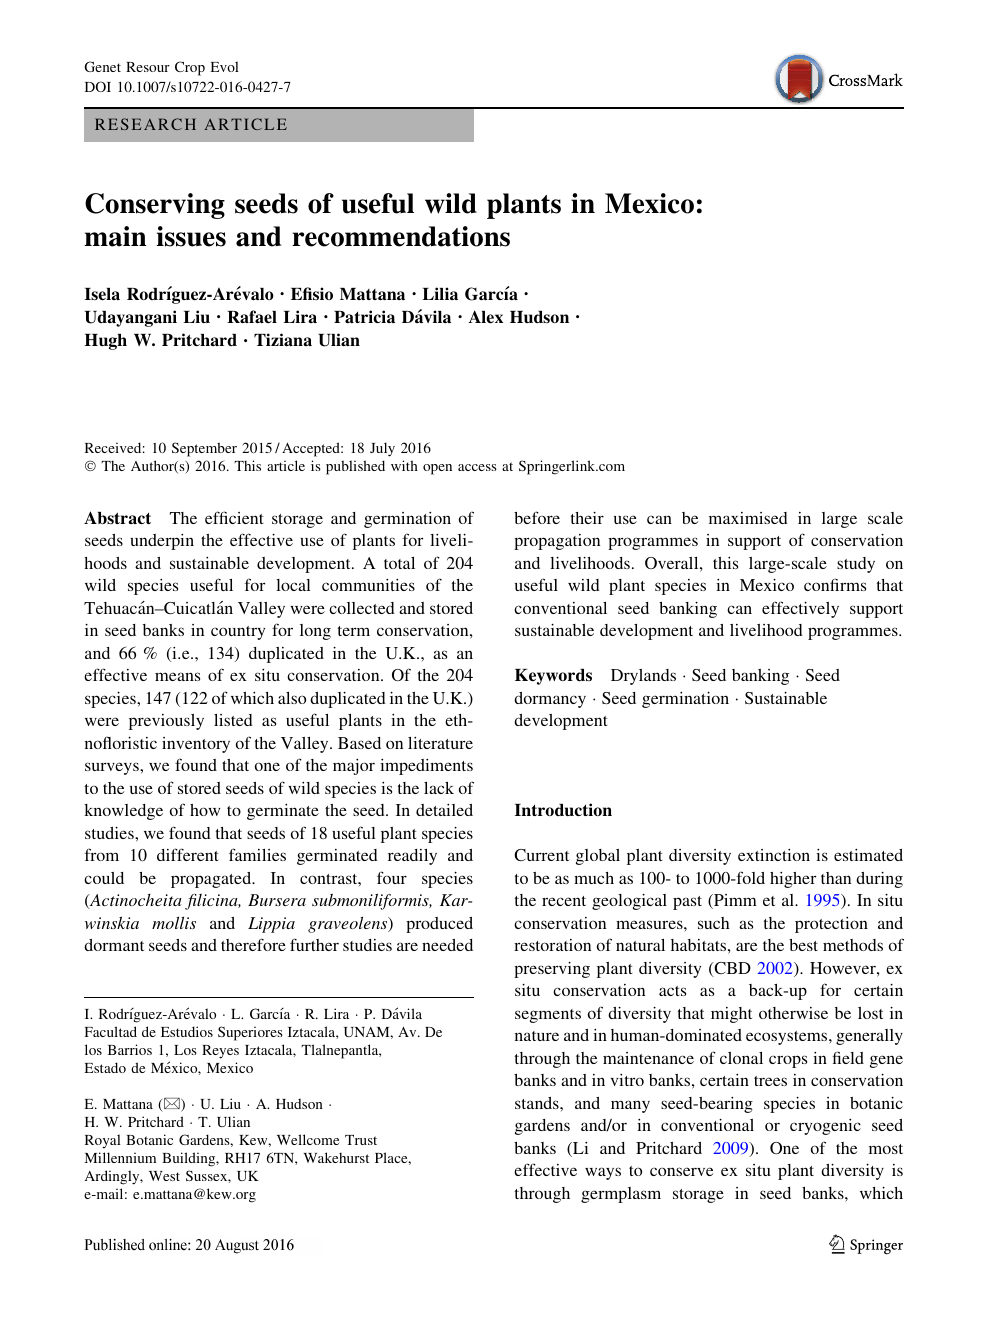 Conserving seeds of useful wild plants in Mexico: main